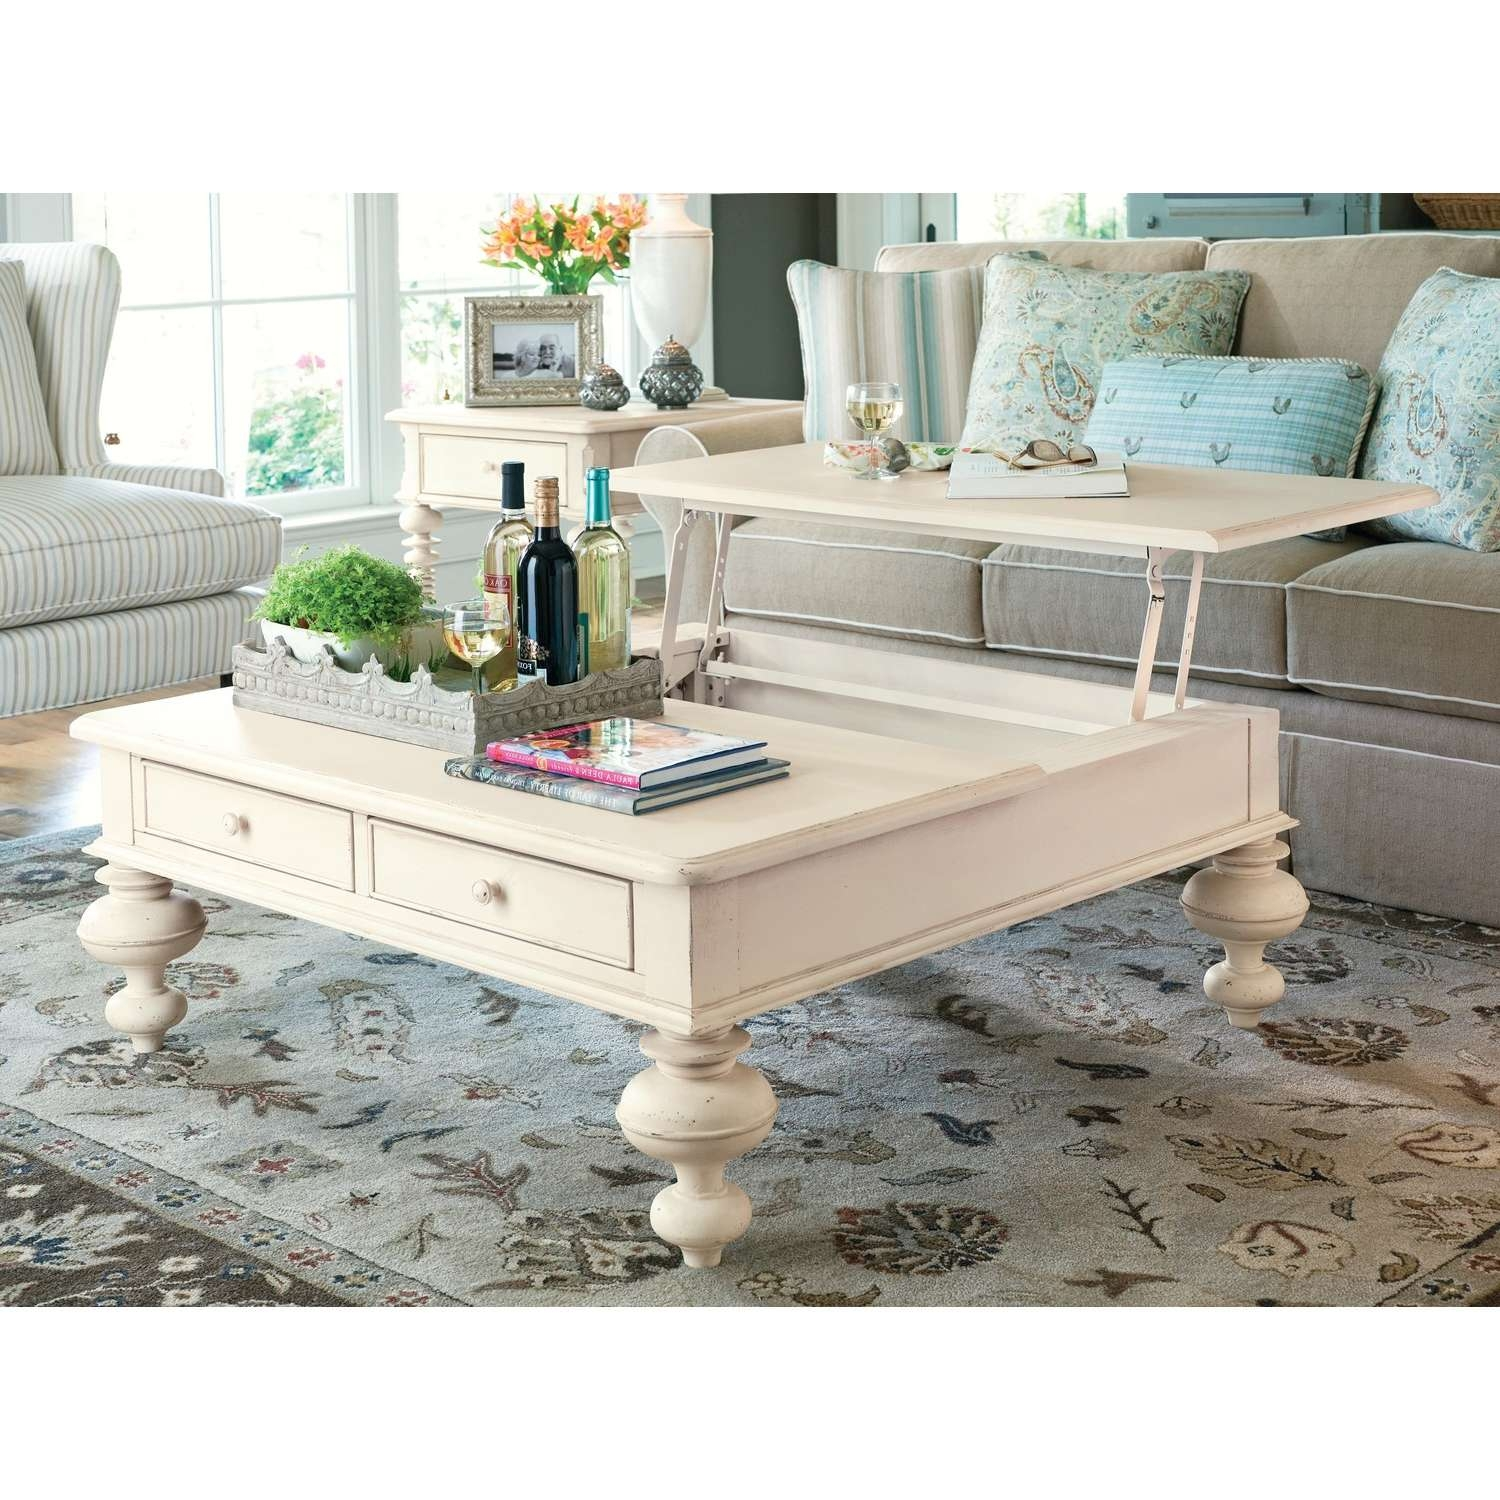 Paula Deen Home Put Your Feet Up Lift Top Coffee Table Set – Take Regarding Latest Lift Up Top Coffee Tables (View 15 of 20)